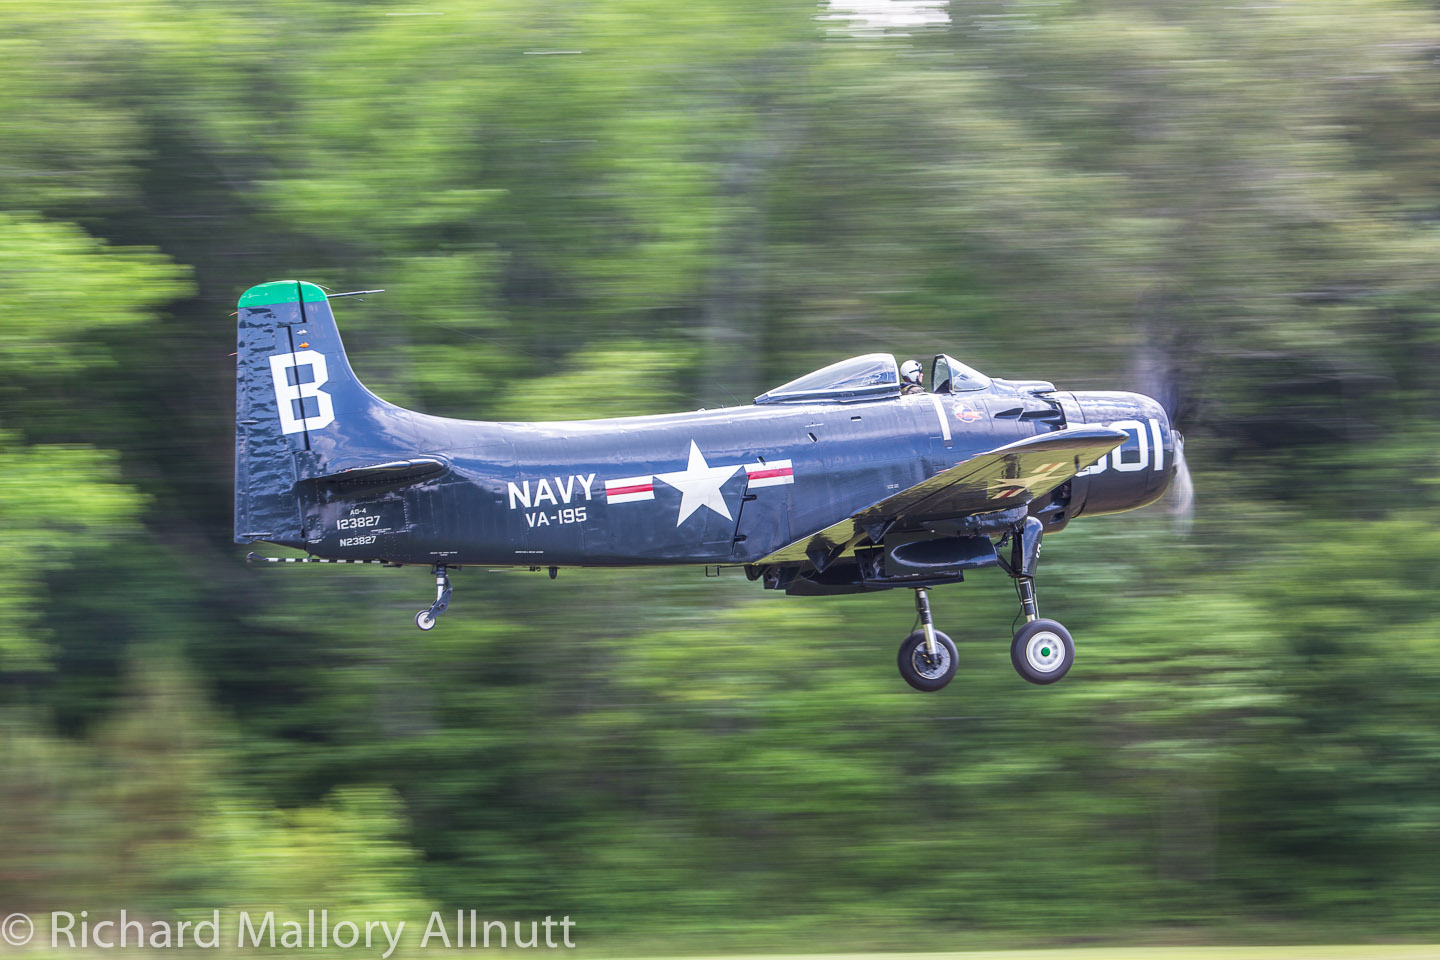 _C8A9483 - Richard Mallory Allnutt photo - Warbirds Over the Beach - Military Aviation Museum - Pungo, VA - May 17, 2014